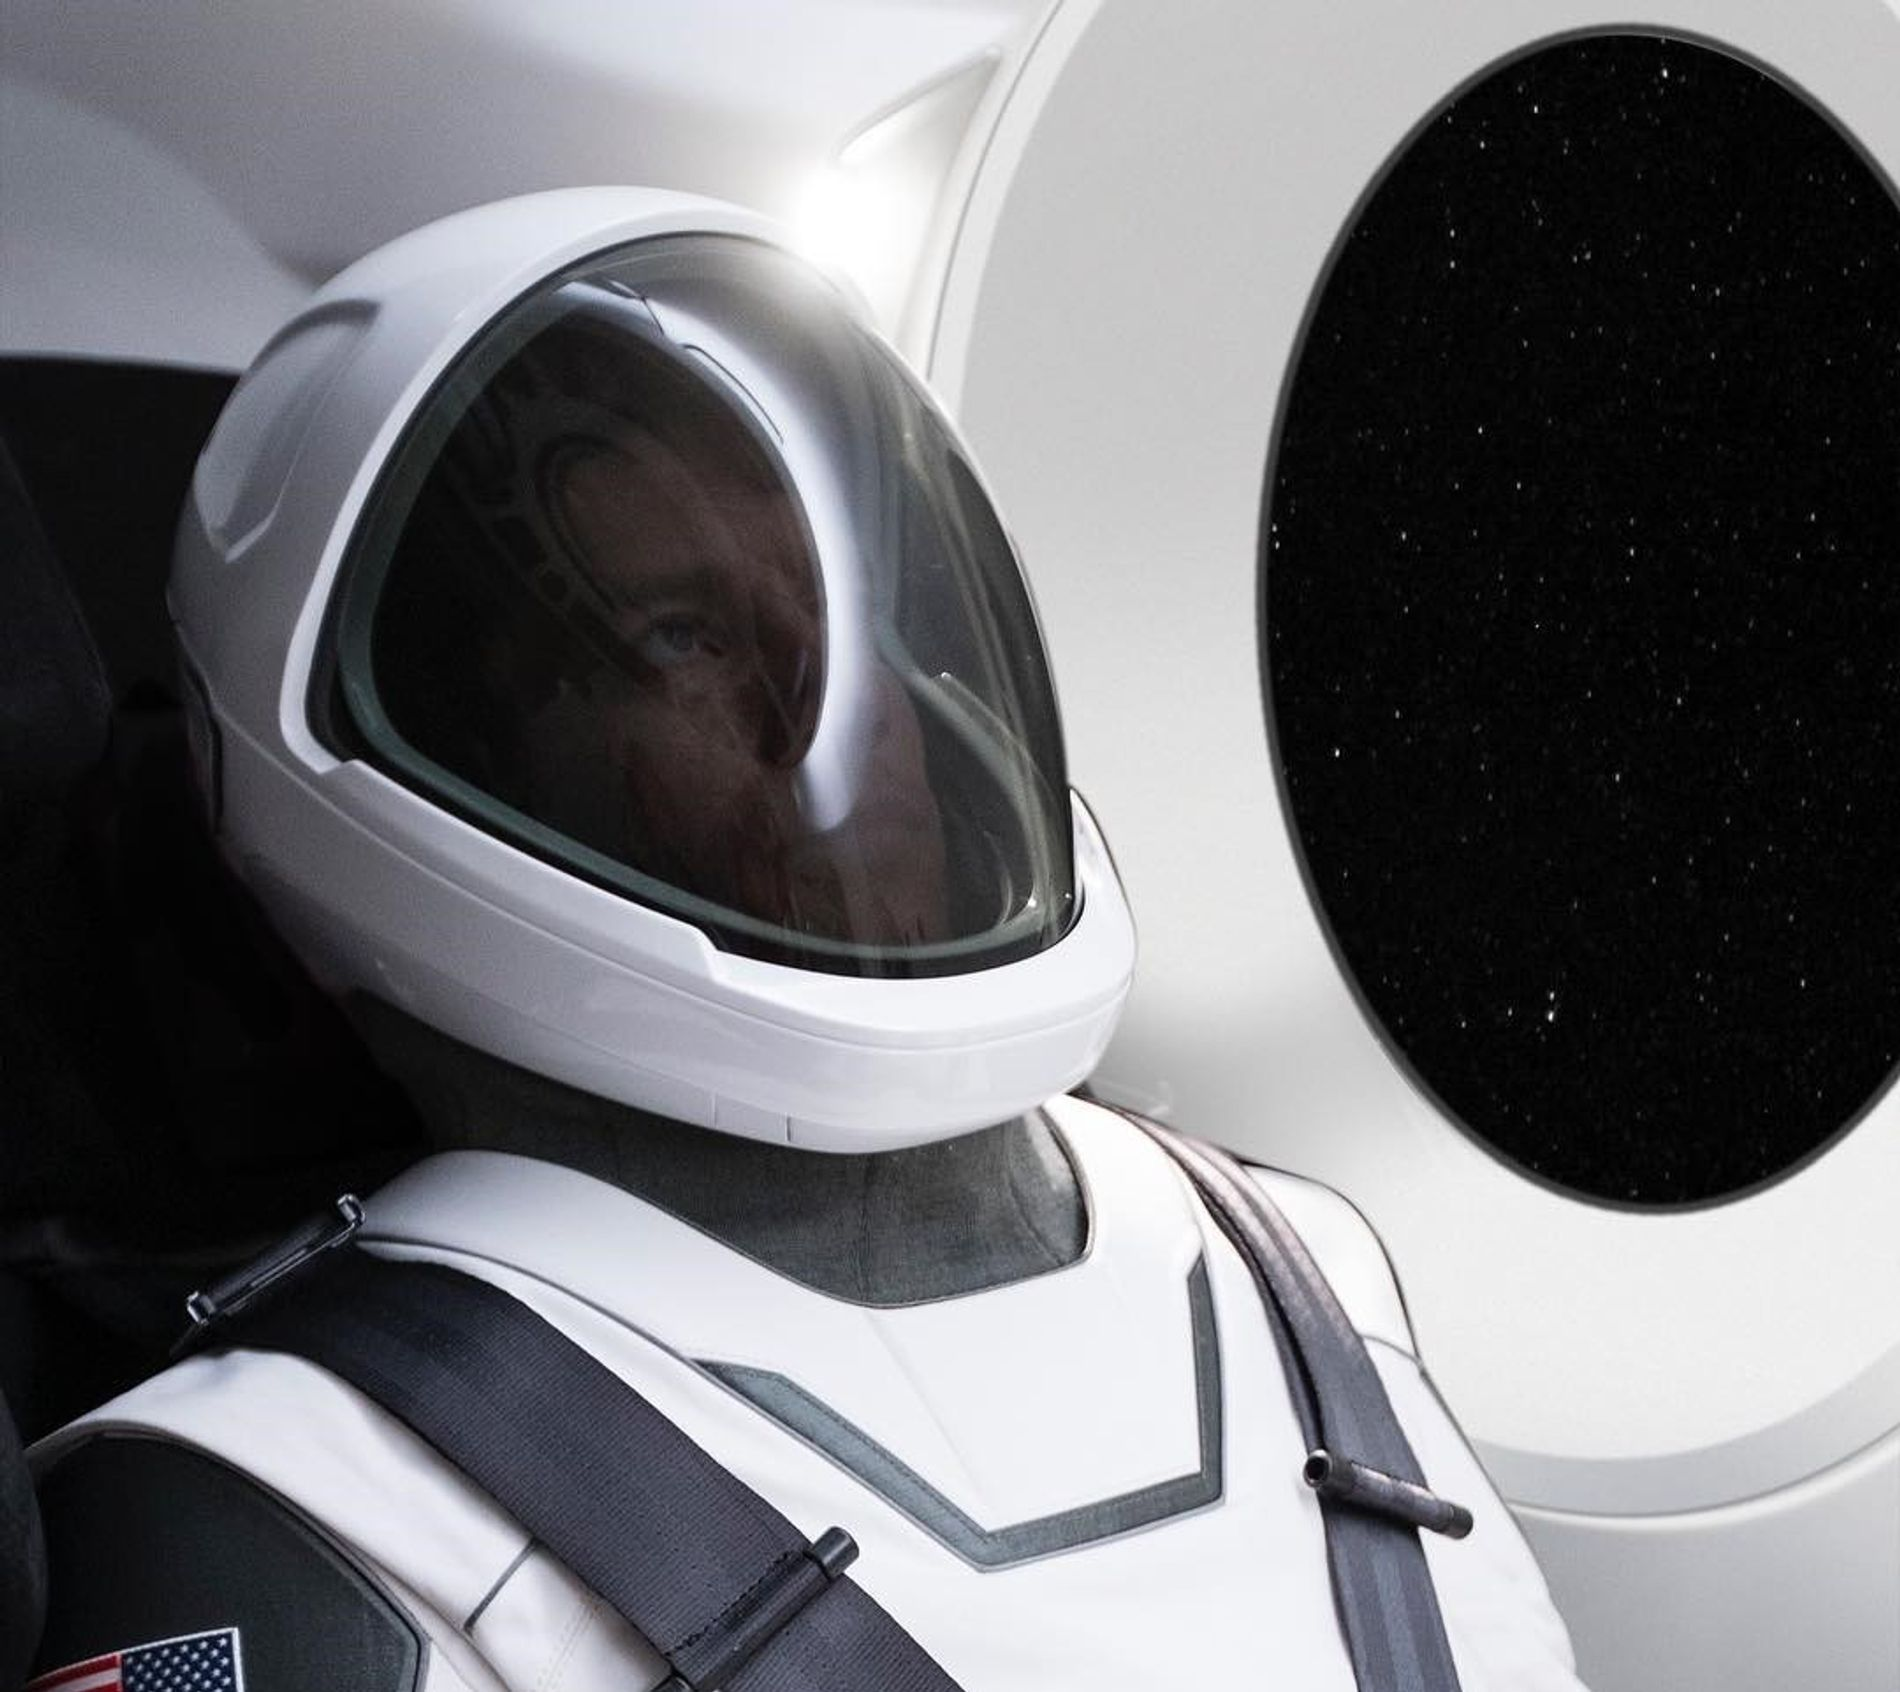 Traje espacial SpaceX